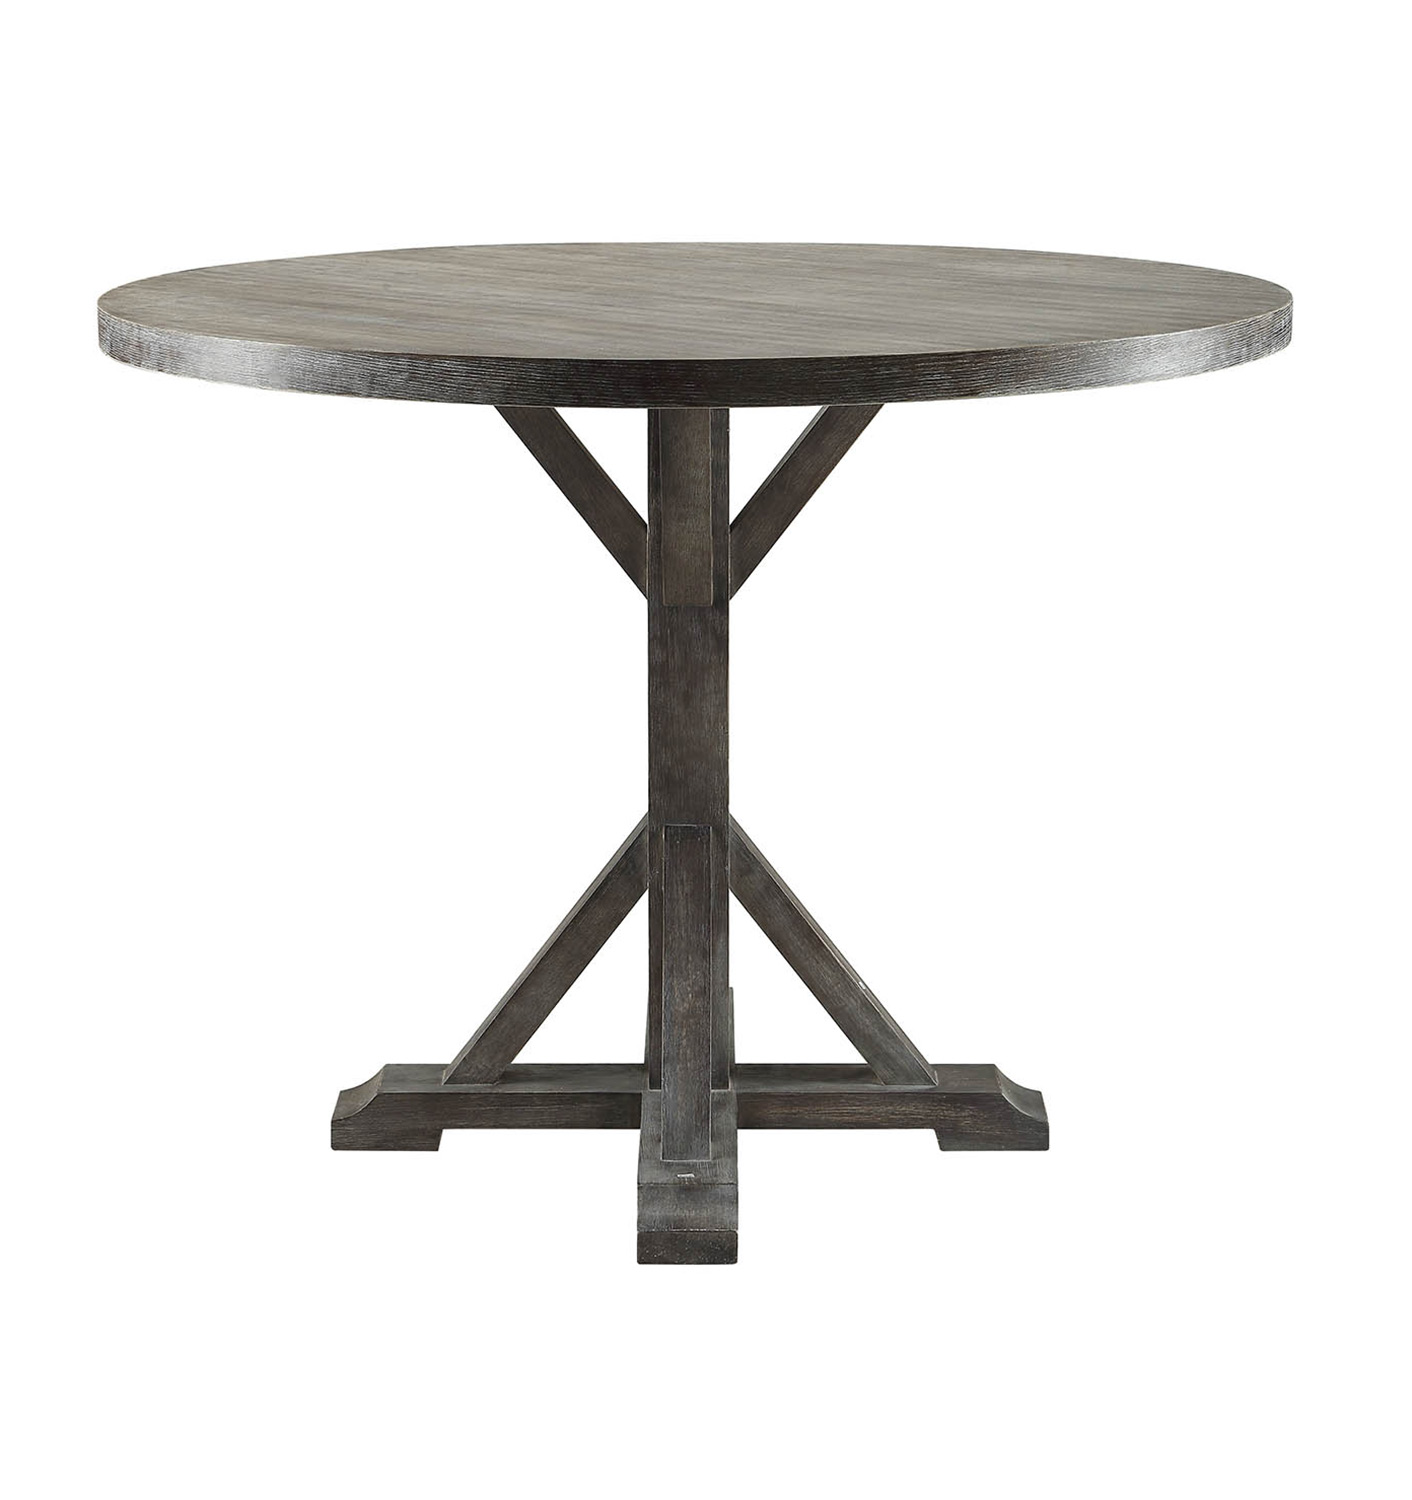 Acme Carmelina Counter Height Table - Weathered Gray Oak